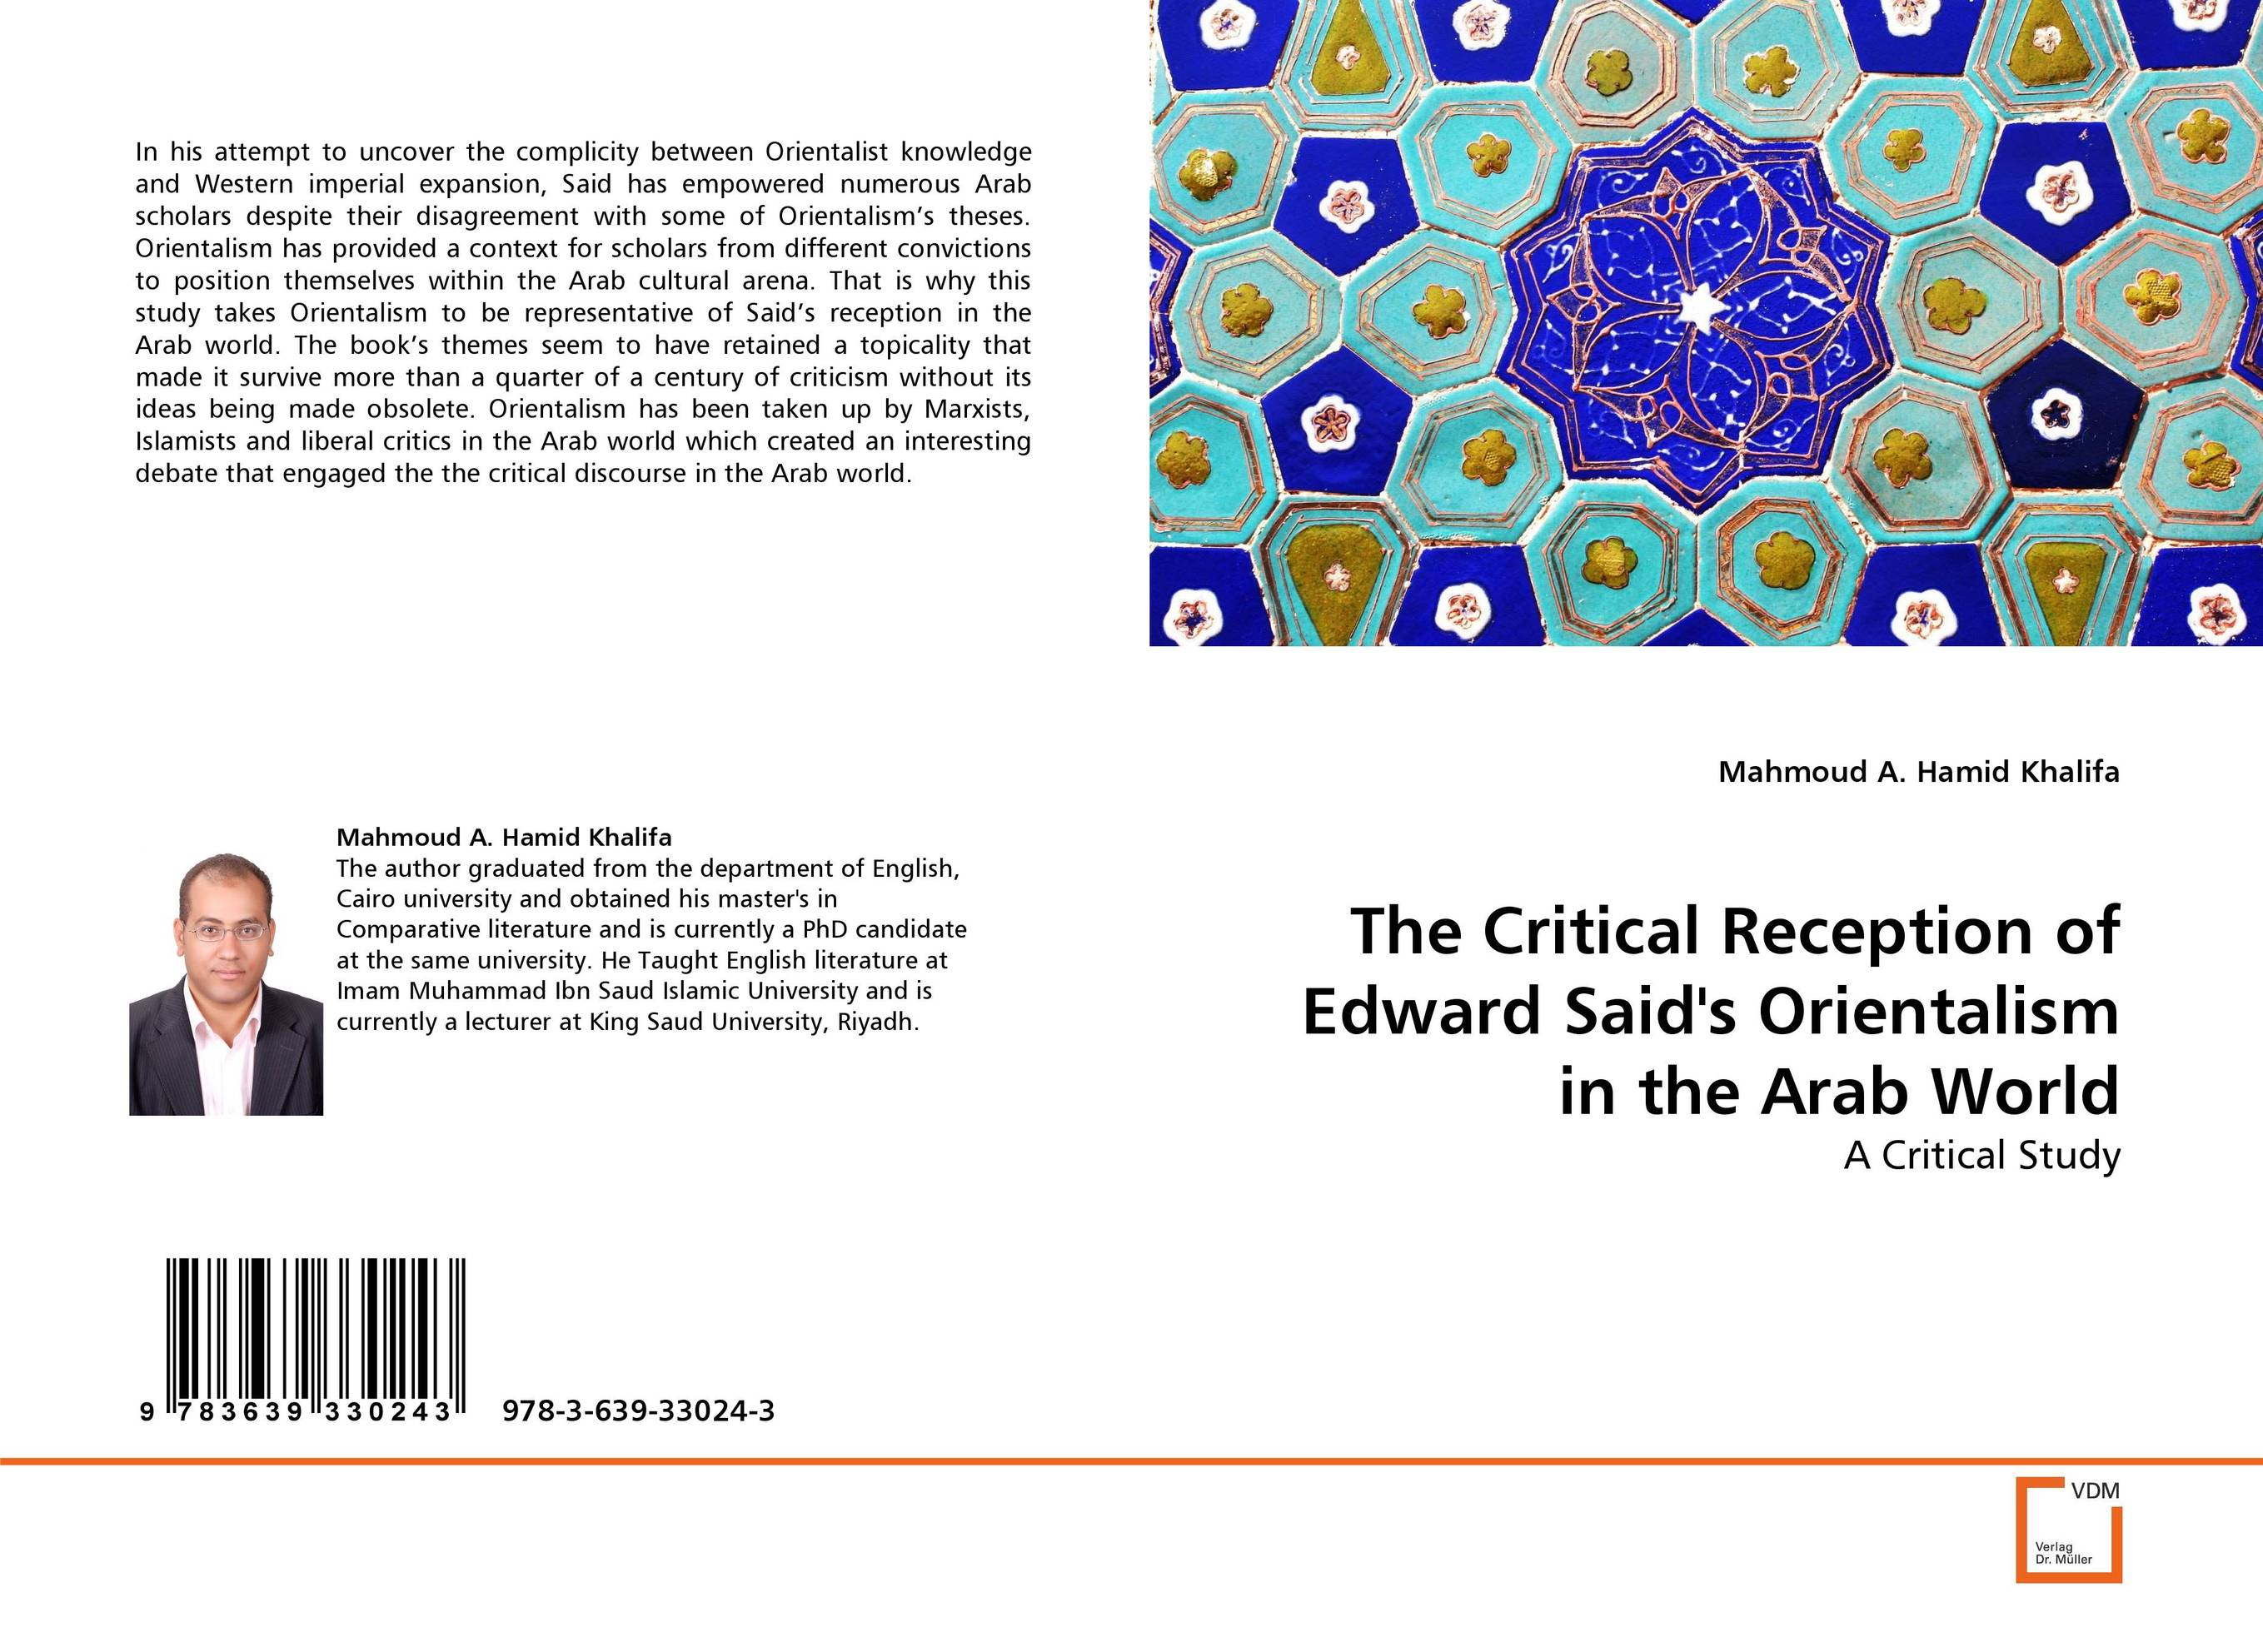 The Critical Reception of Edward Said's Orientalism in the Arab World convictions